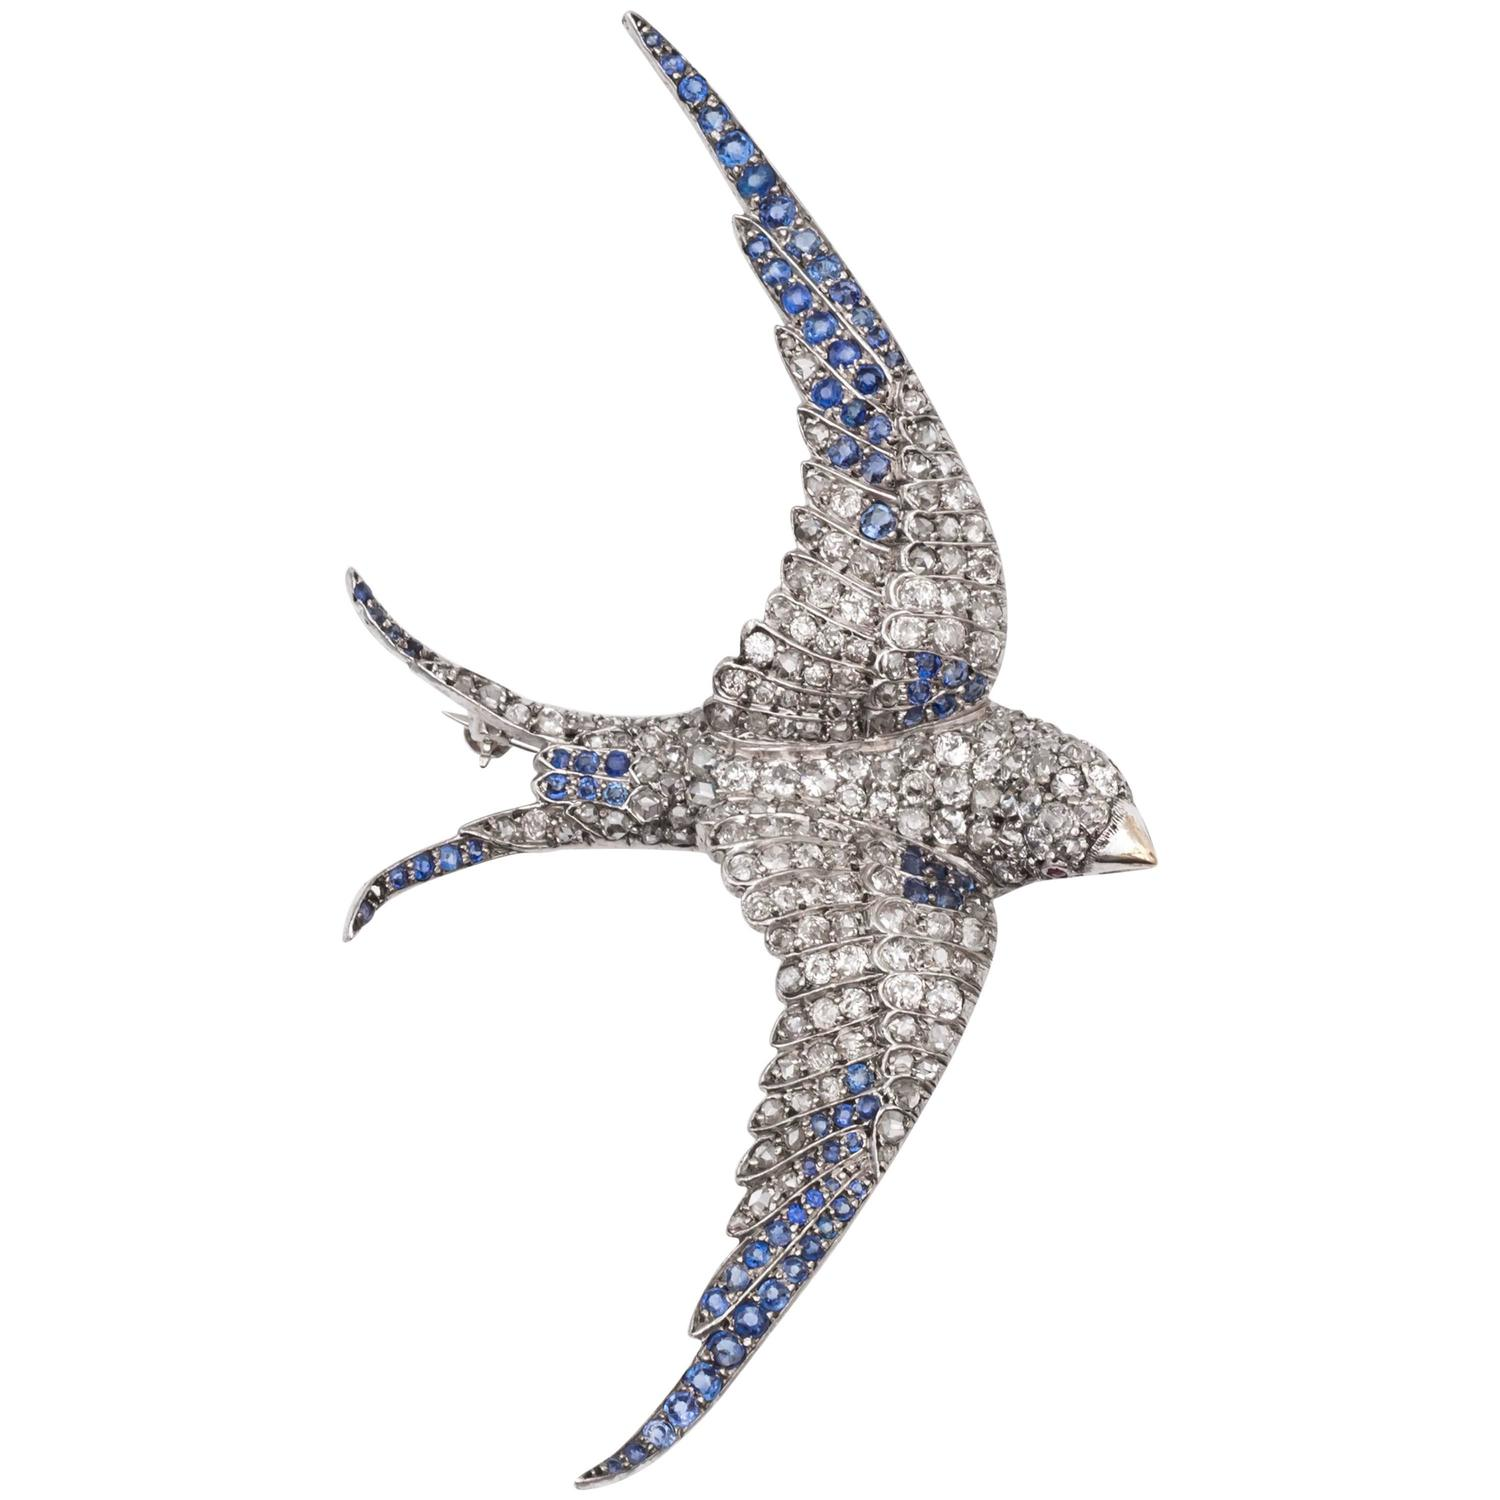 1920s Bird Brooch Embellished In Diamonds And Gemstones